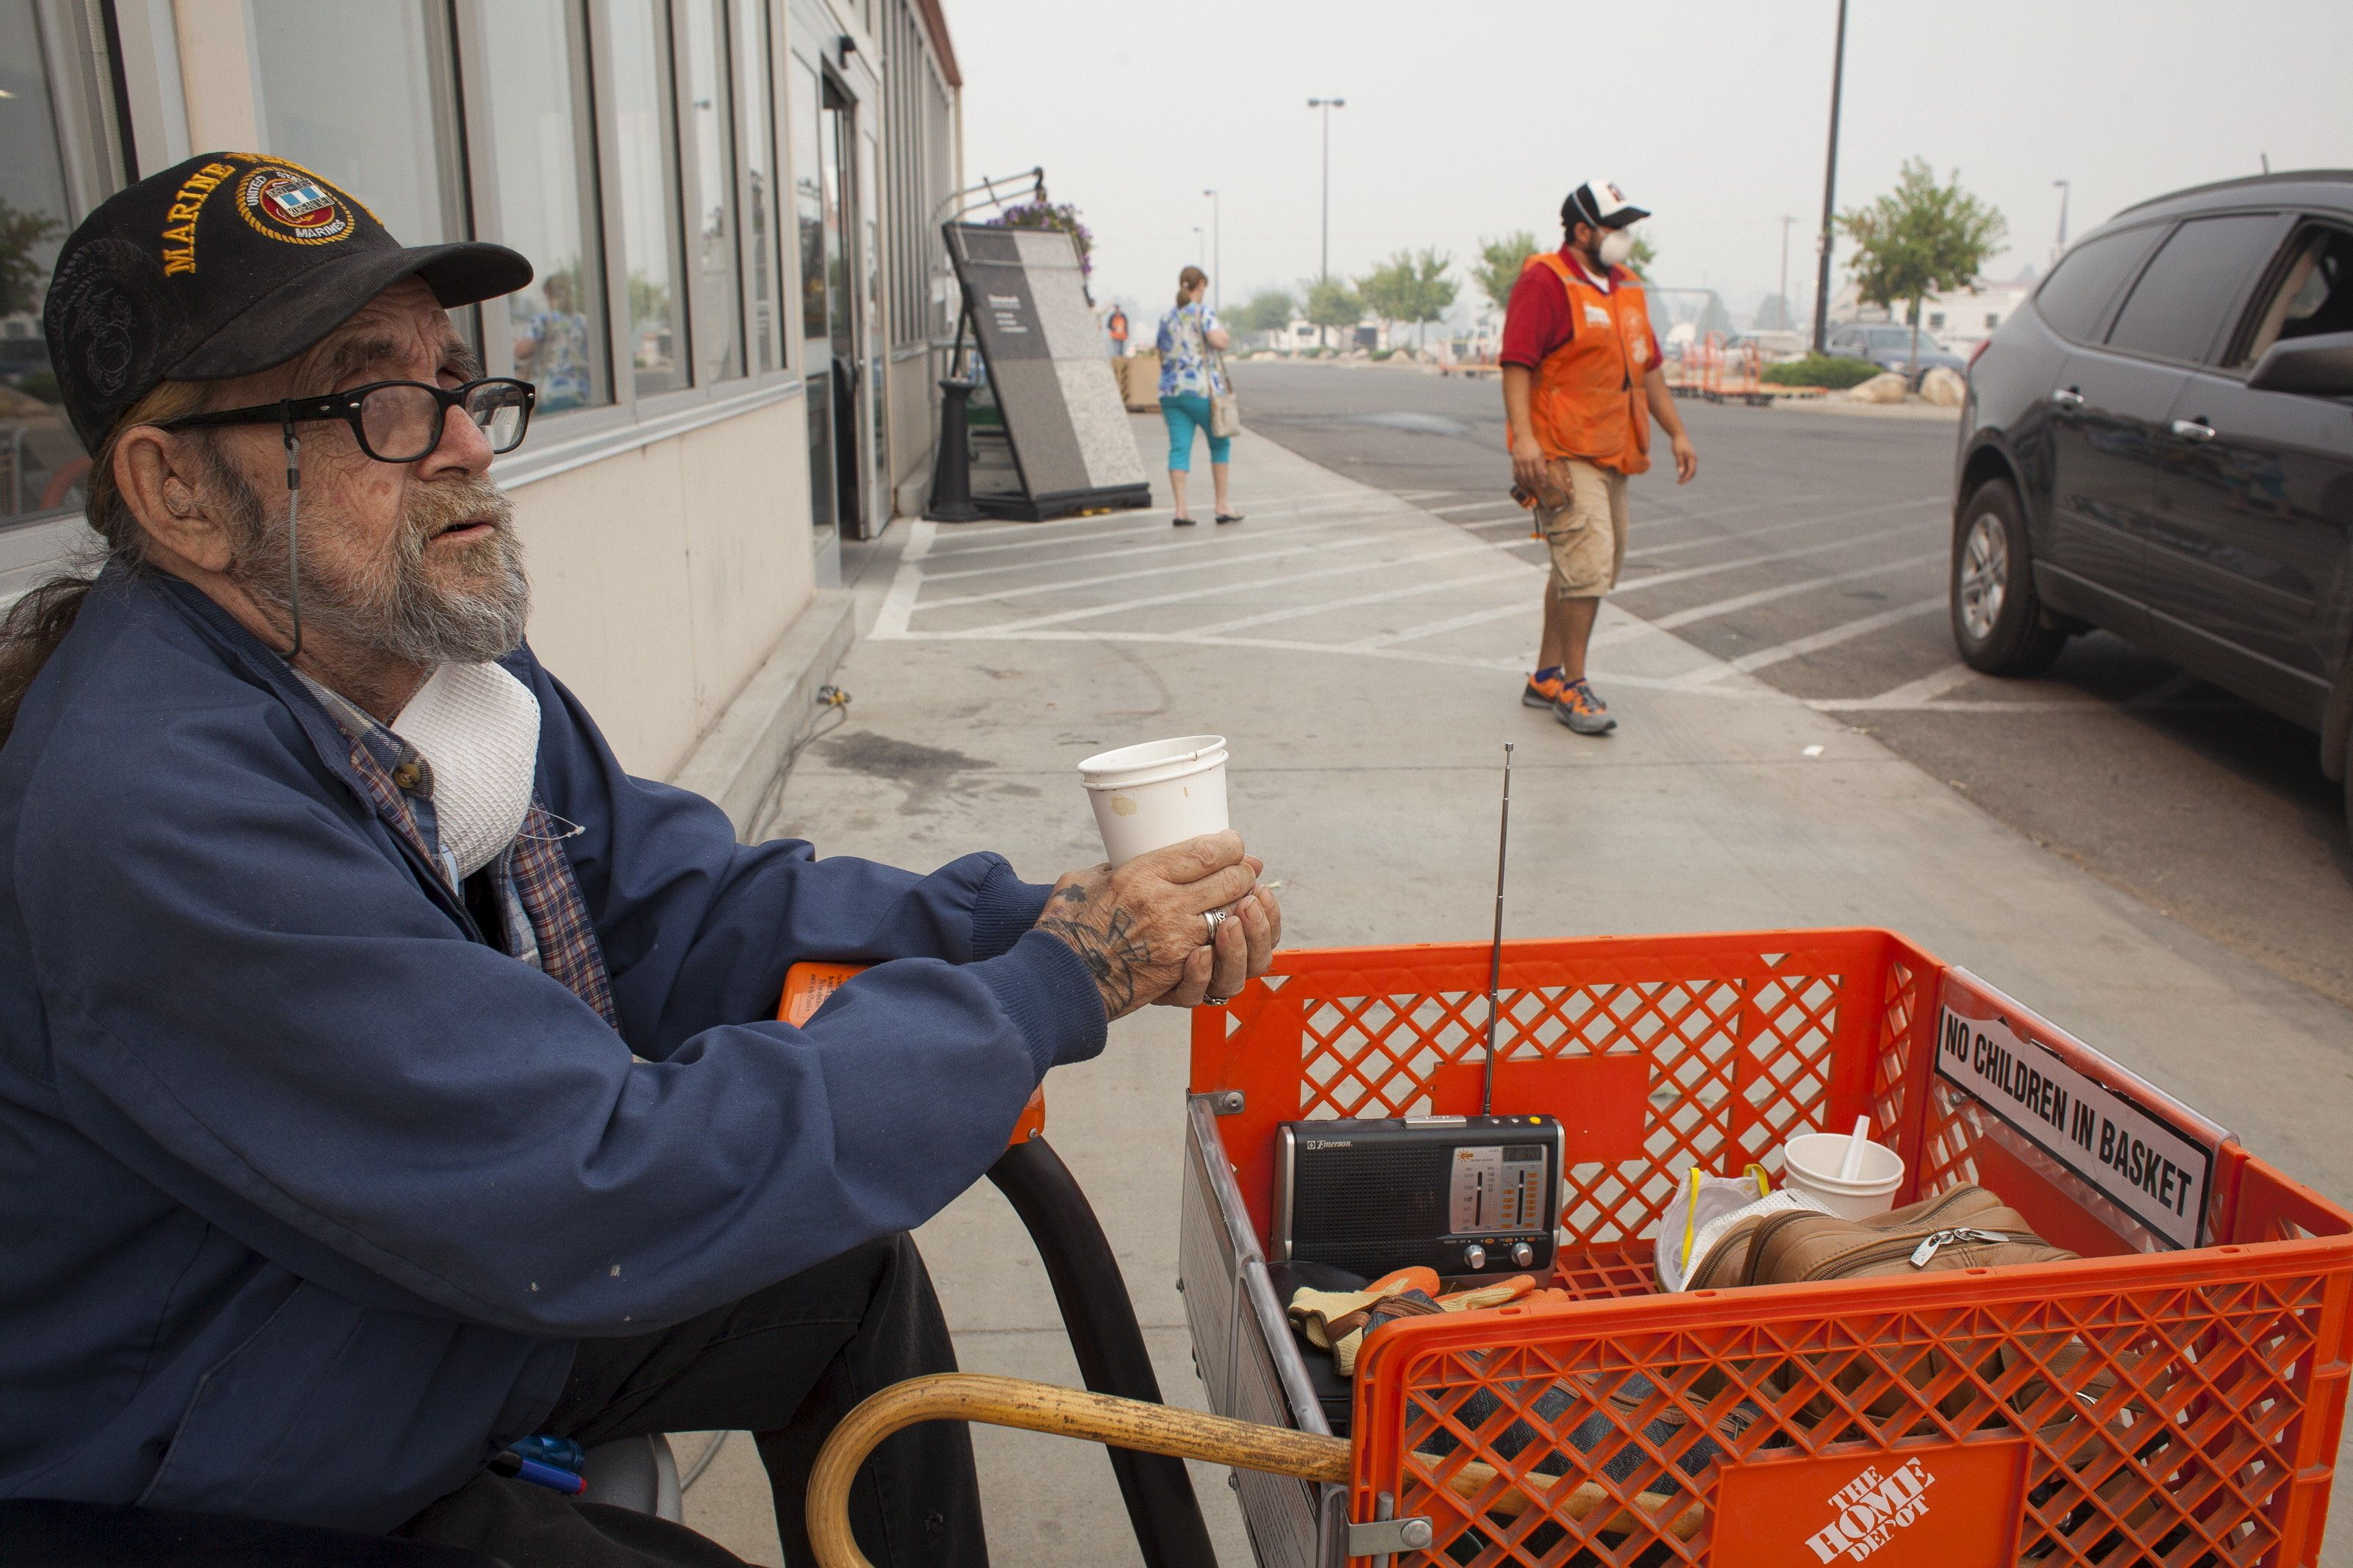 U.S. Marine Corps veteran Martin Silverhawk sits outside a Home Depot store, where he has been living since evacuating his ho